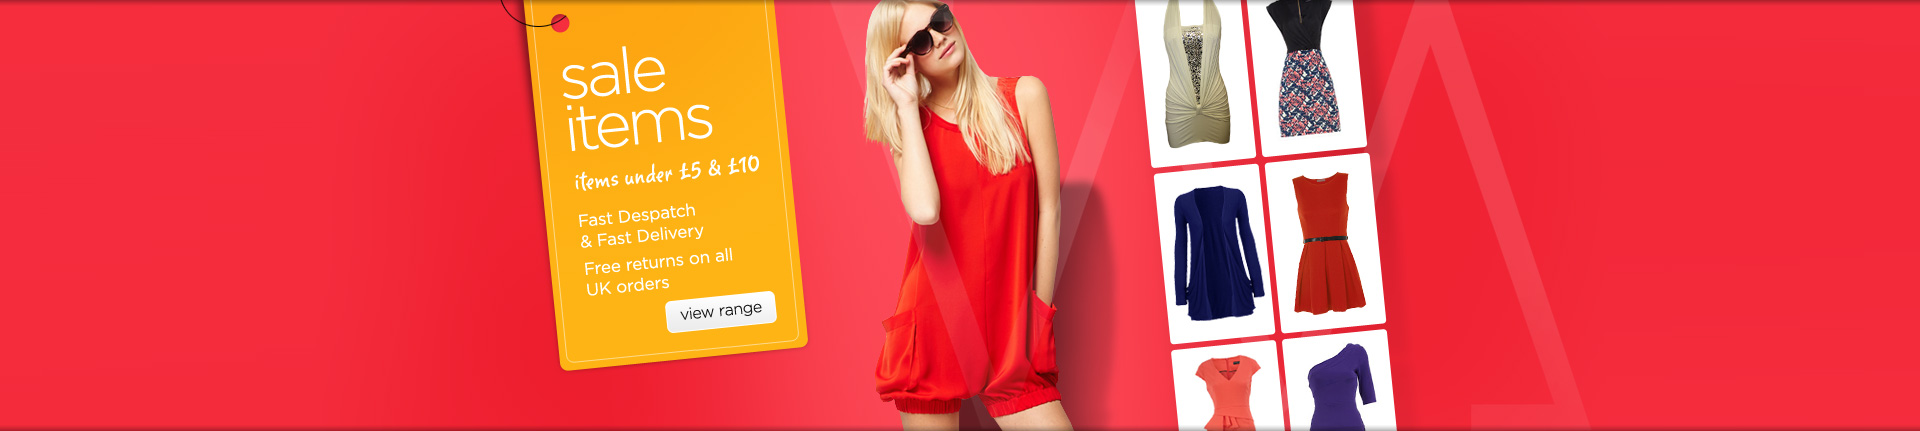 Womens Clothes, High Street Fashion - Buy Online From WearAll.com